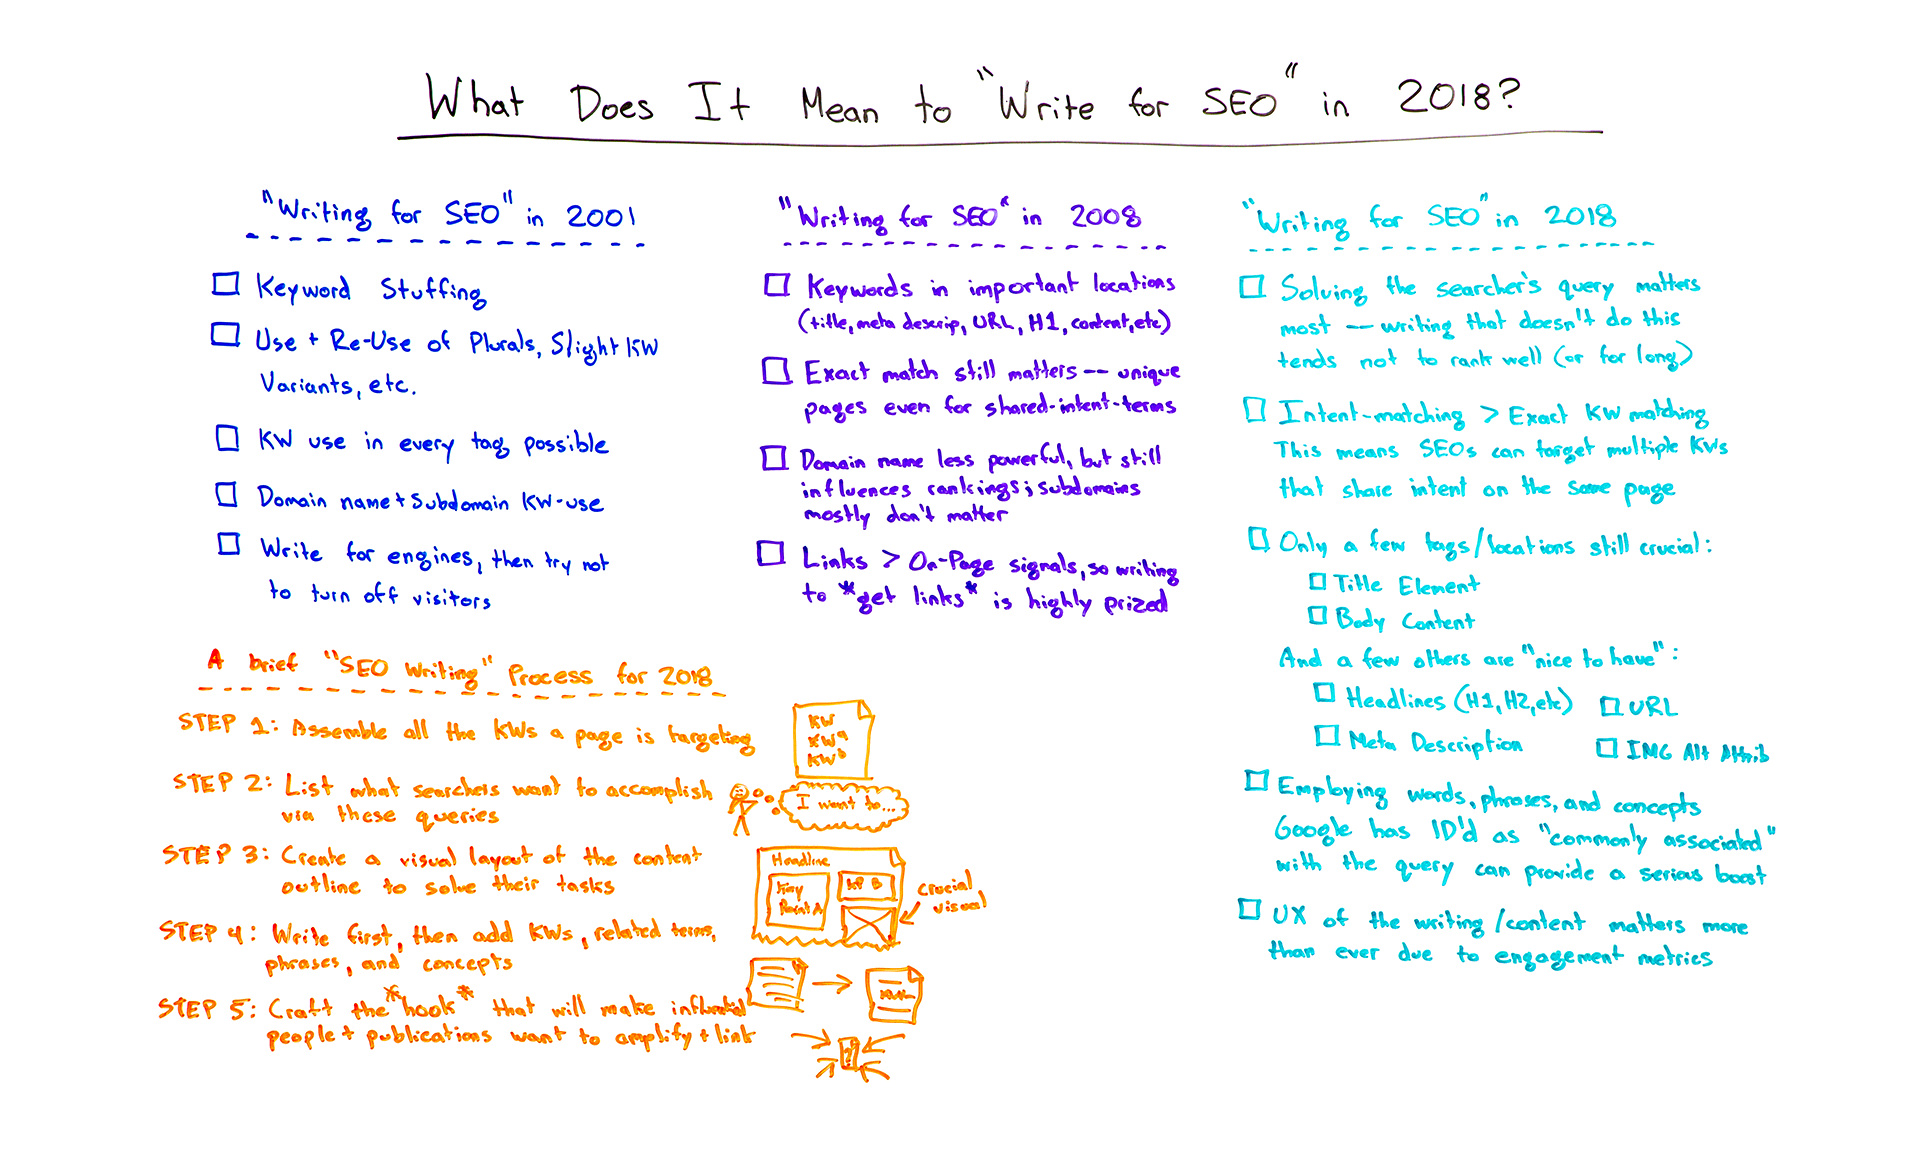 Write for SEO in 2018